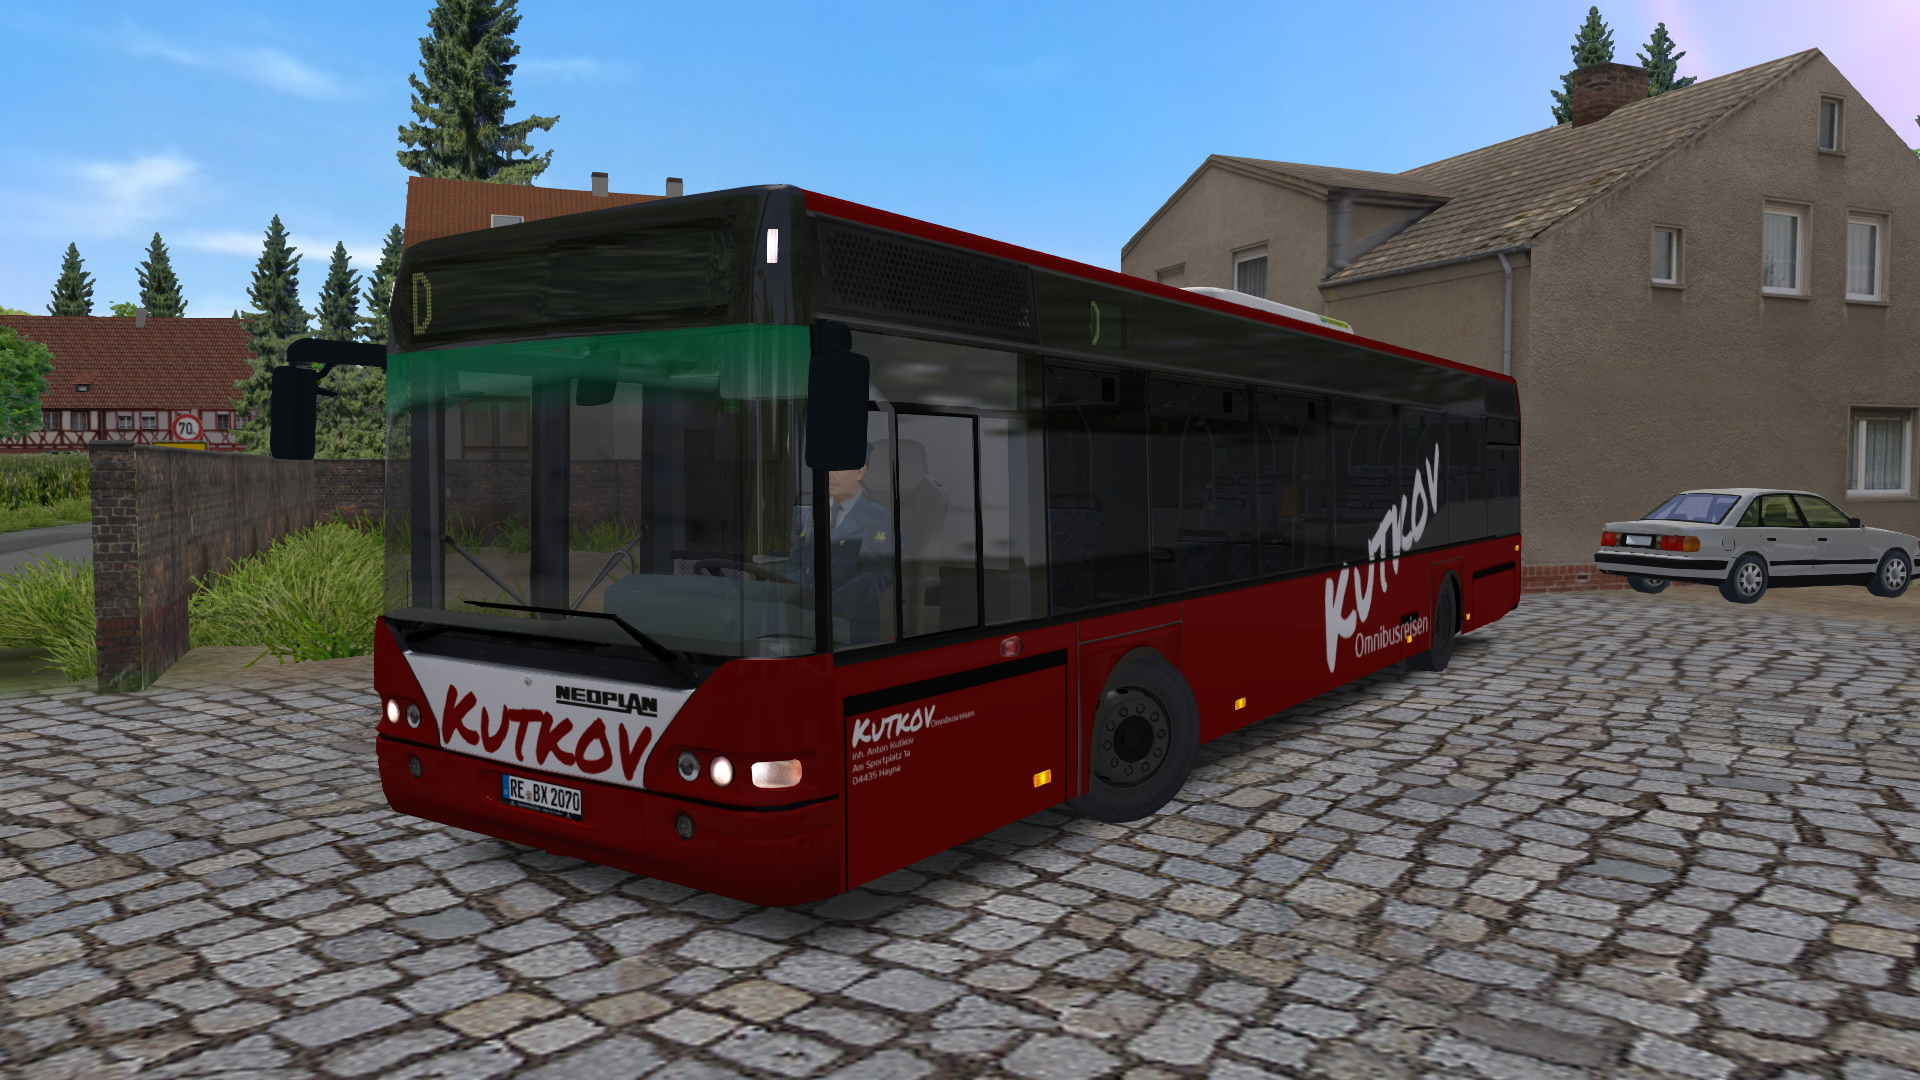 [Omsi2] Neoplan Centroliner Euro 3 BETA V 0.7 - PATCH/UPDATE! (by Kevin2704) 10560-7-jpg